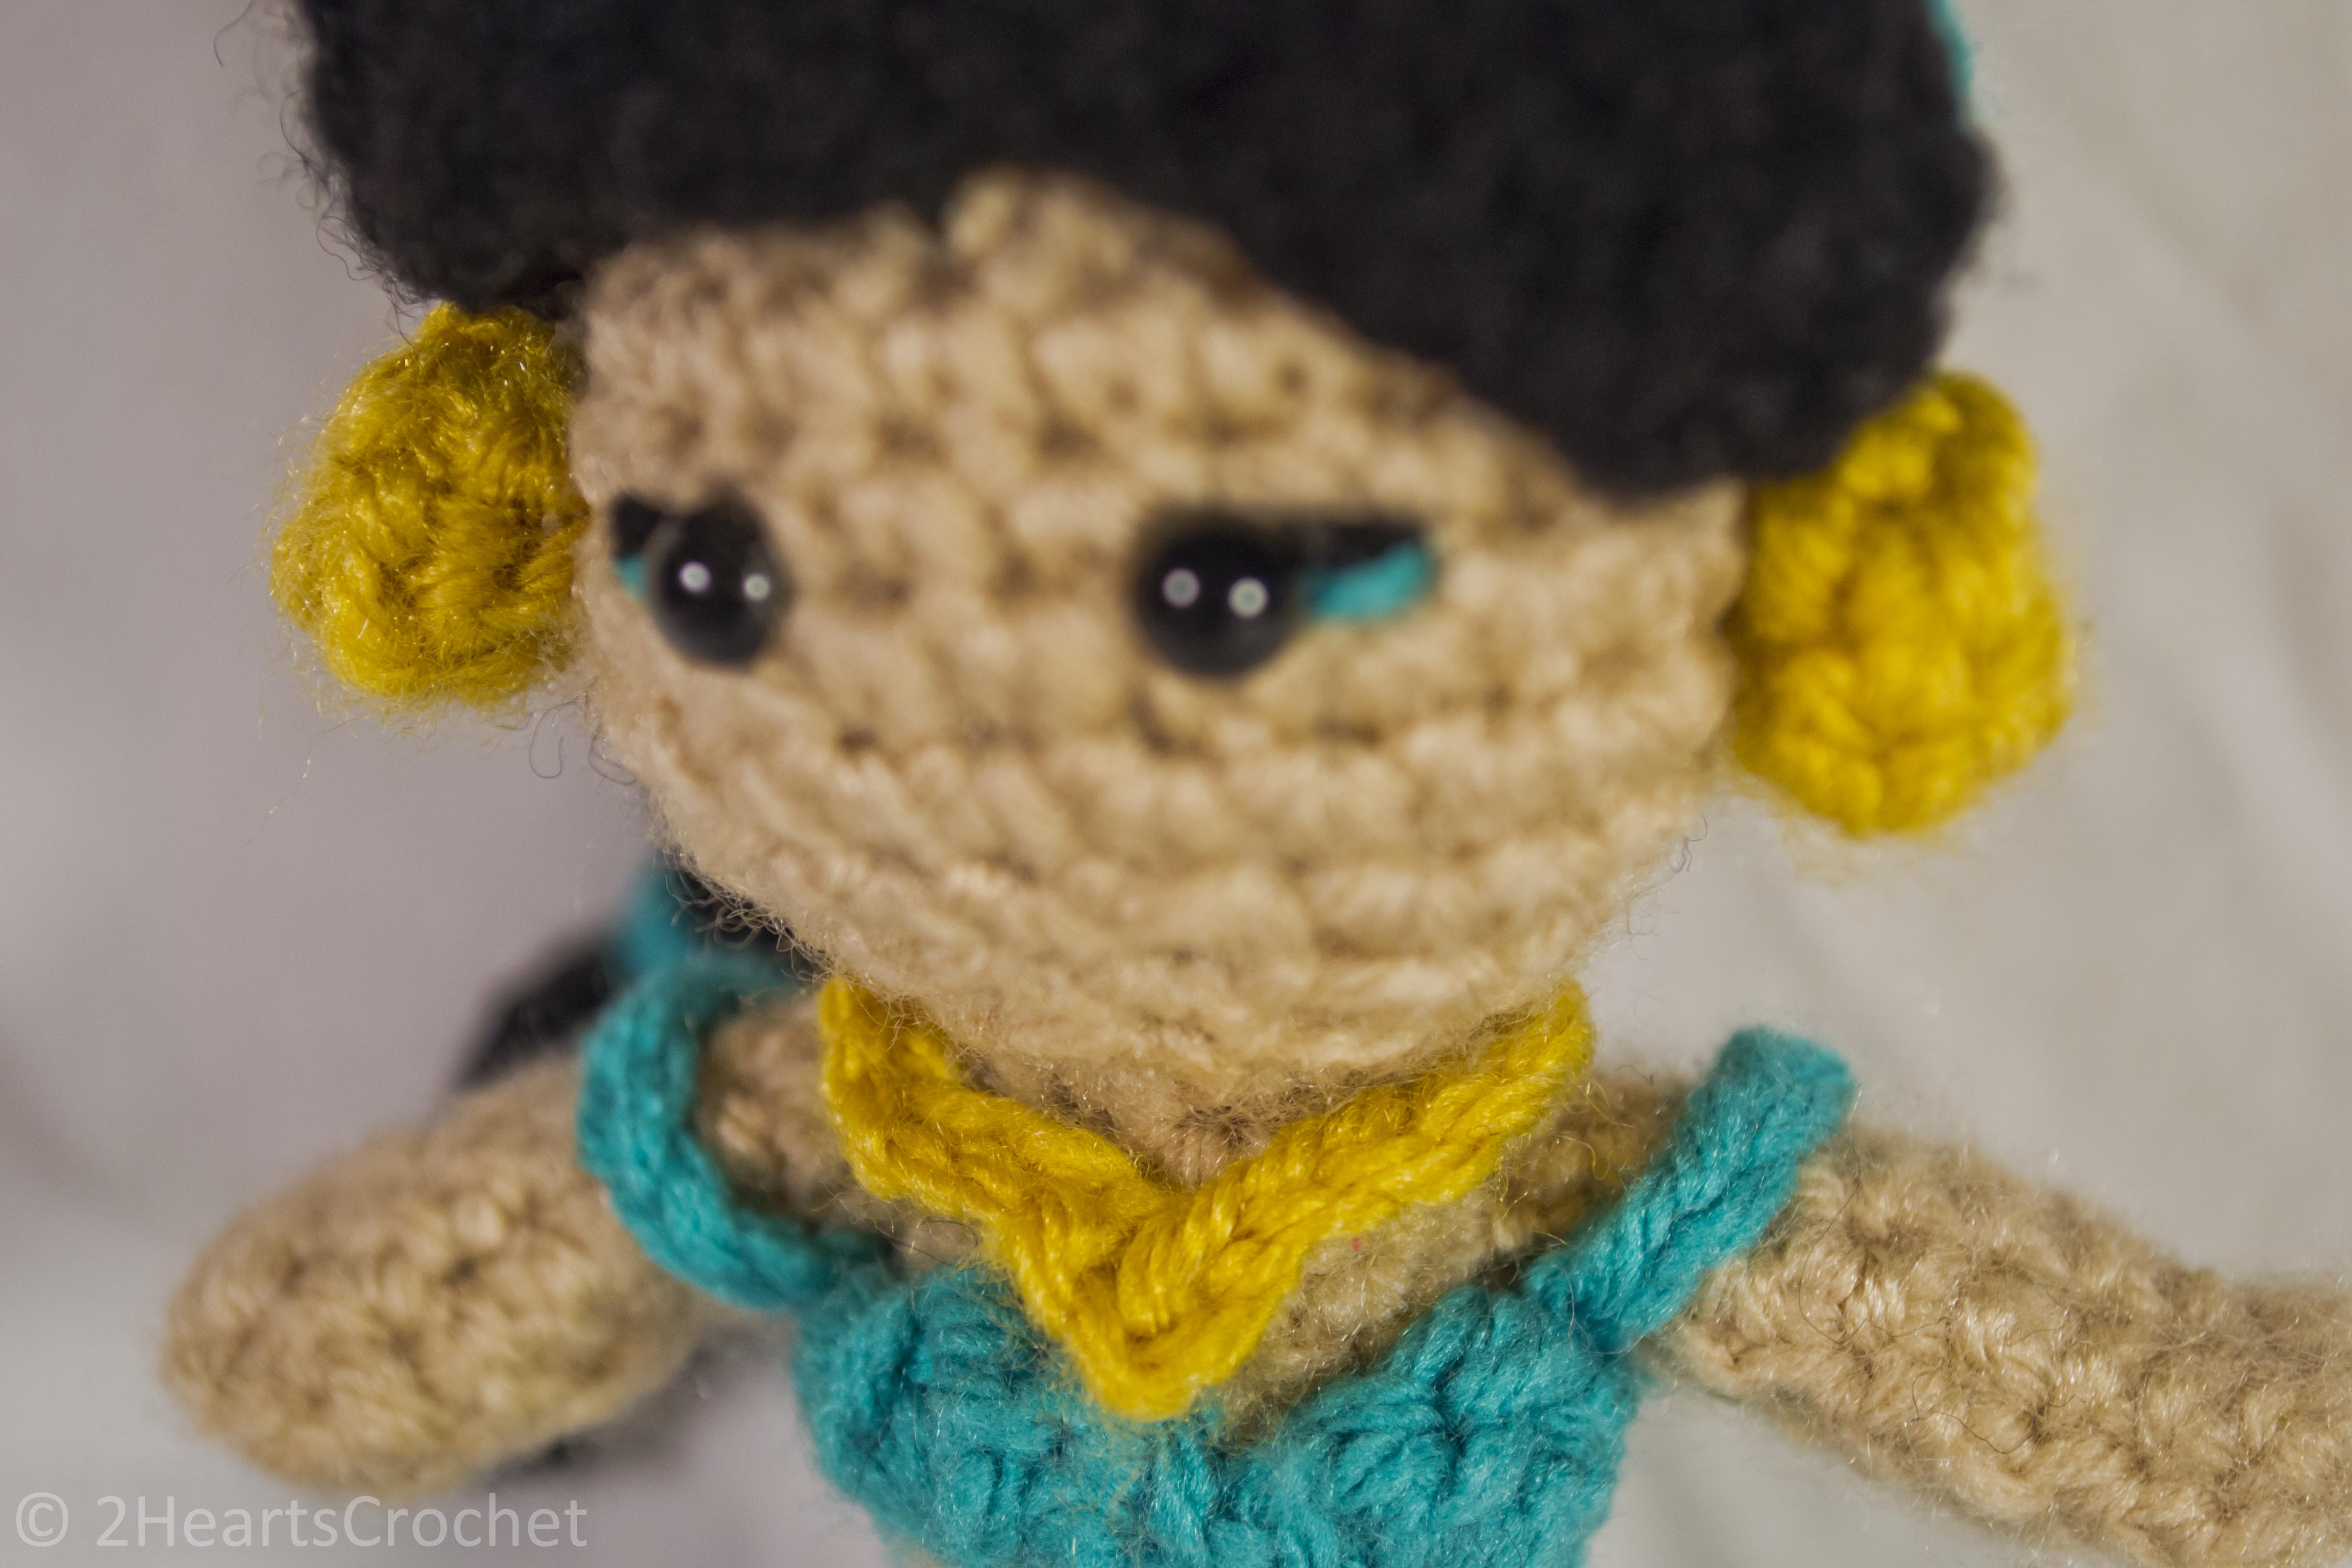 Crochet Stitch Jasmine : Princess Pattern: Jasmine (Aladdin) Amigurumi - Two Hearts Crochet